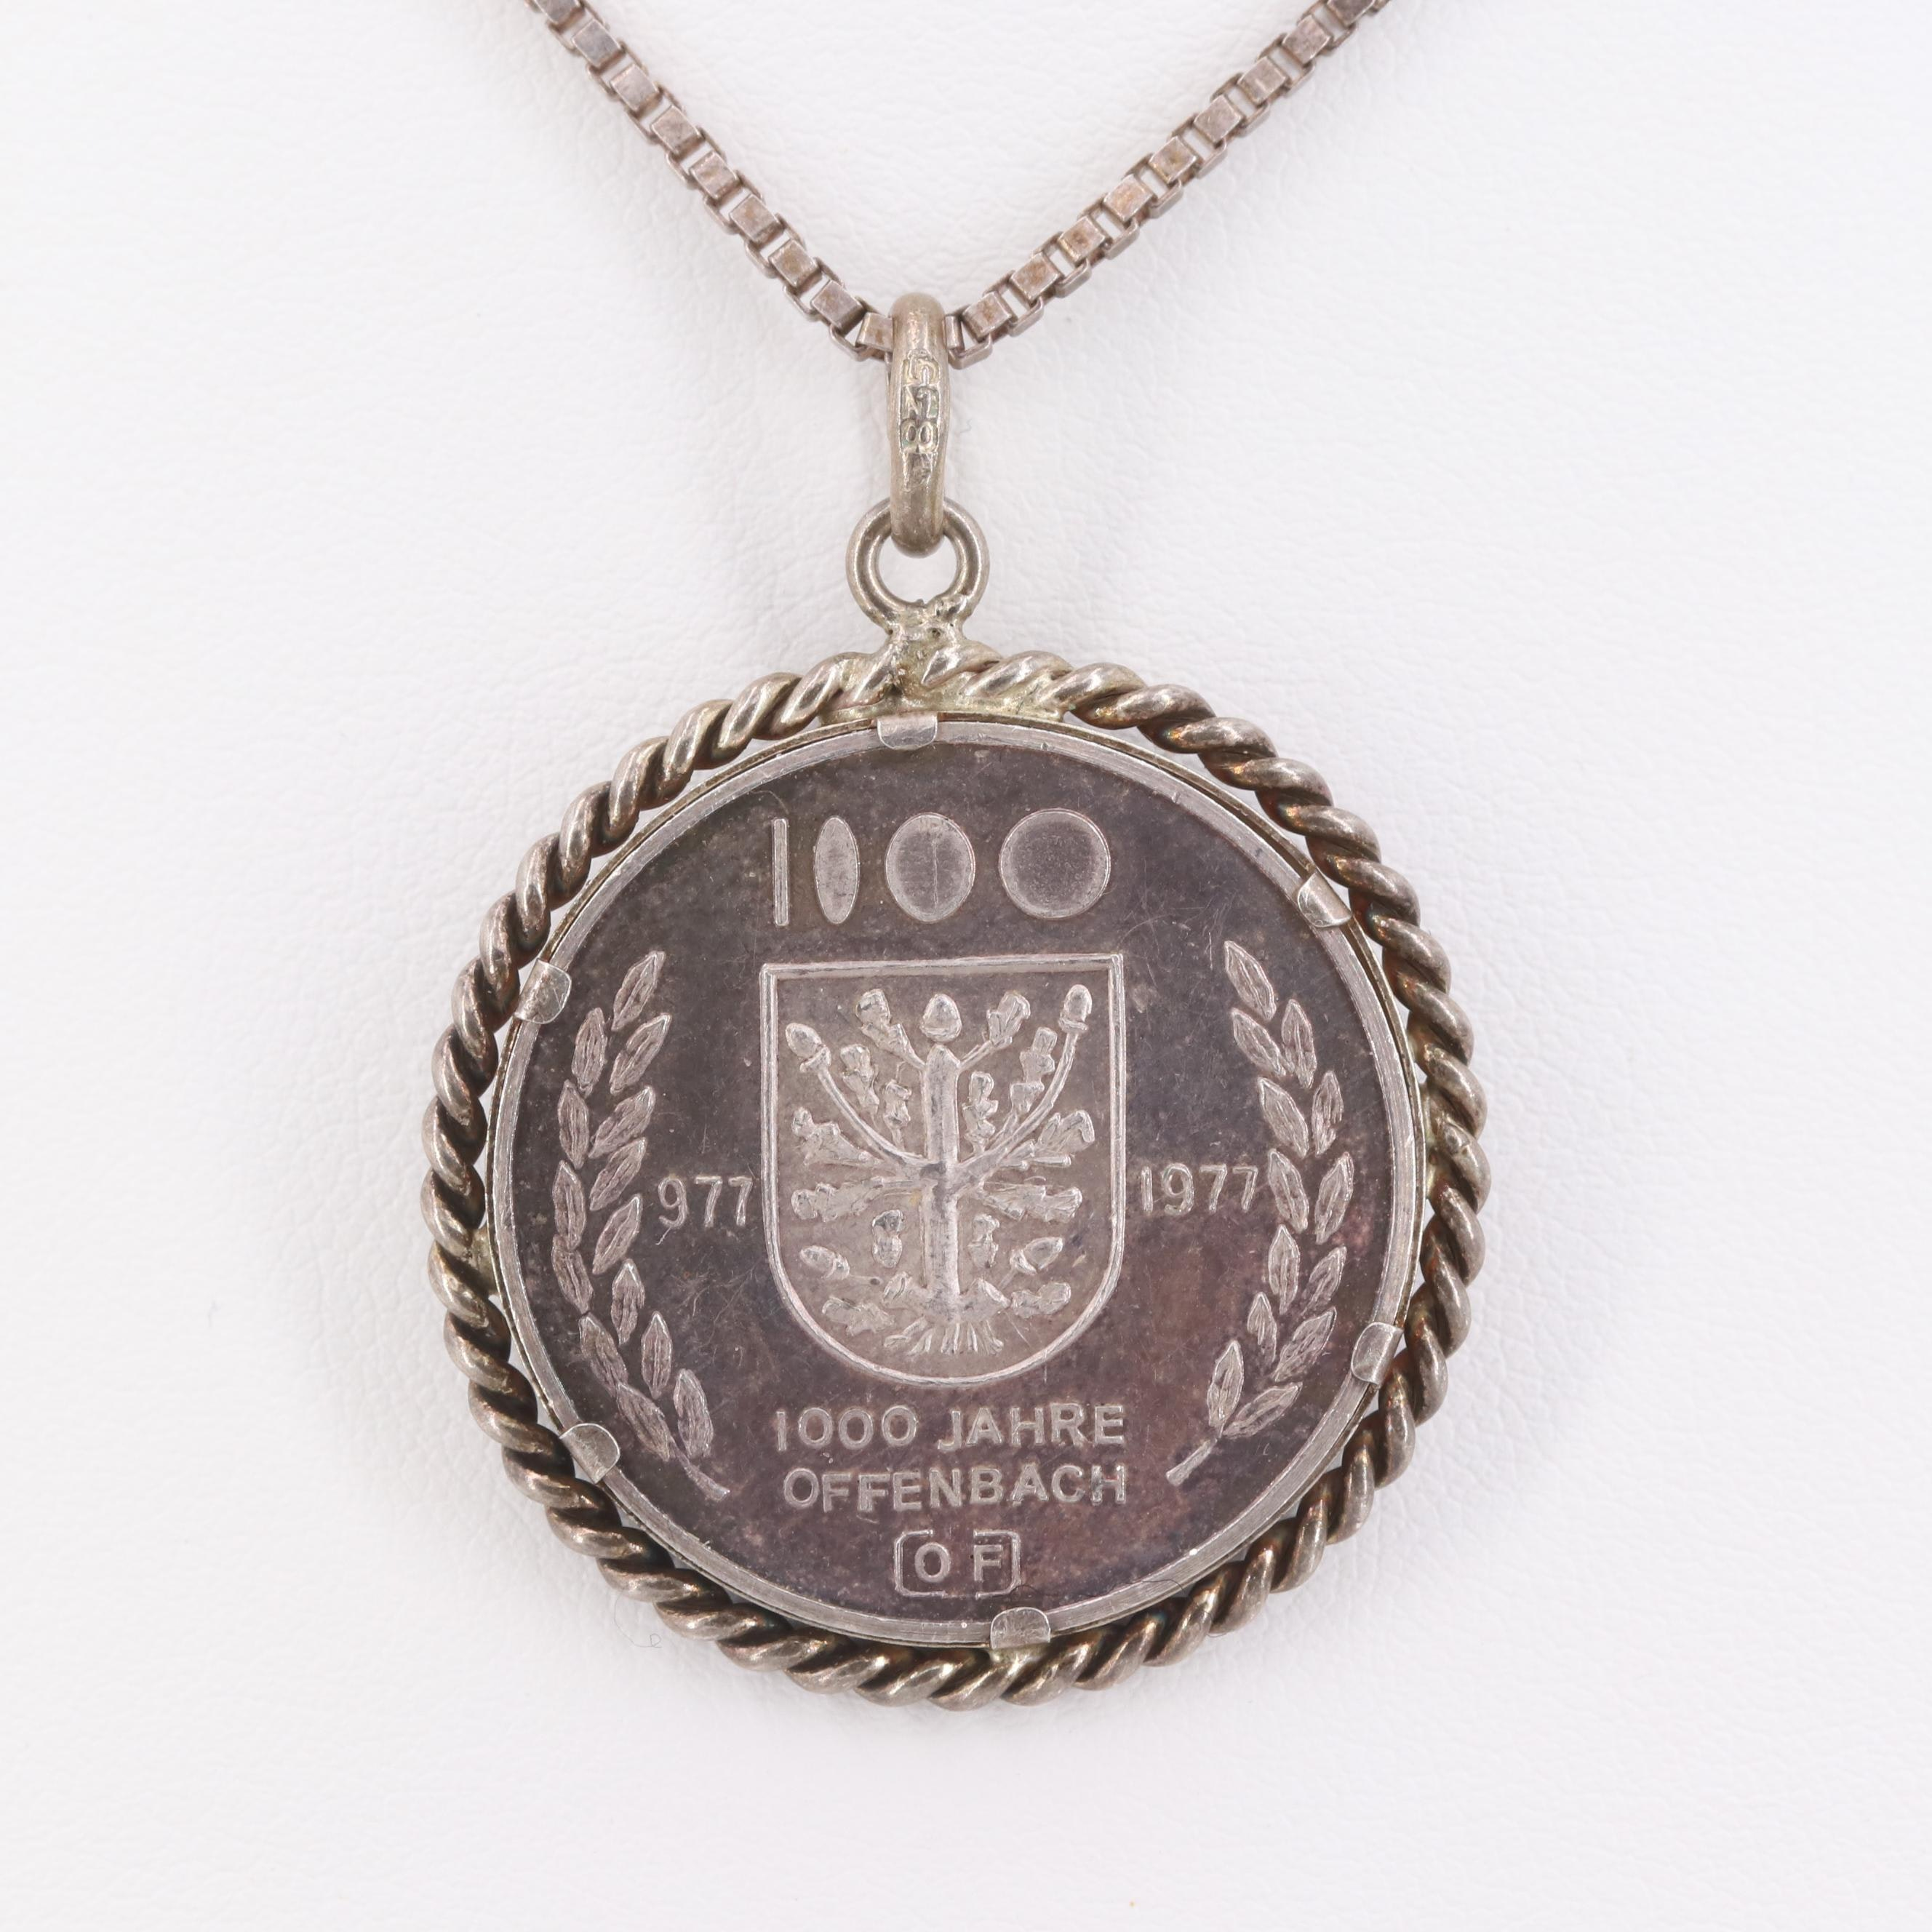 835 and Sterling Silver Necklace and 0.999 Offenbach am Main Commemorative Metal